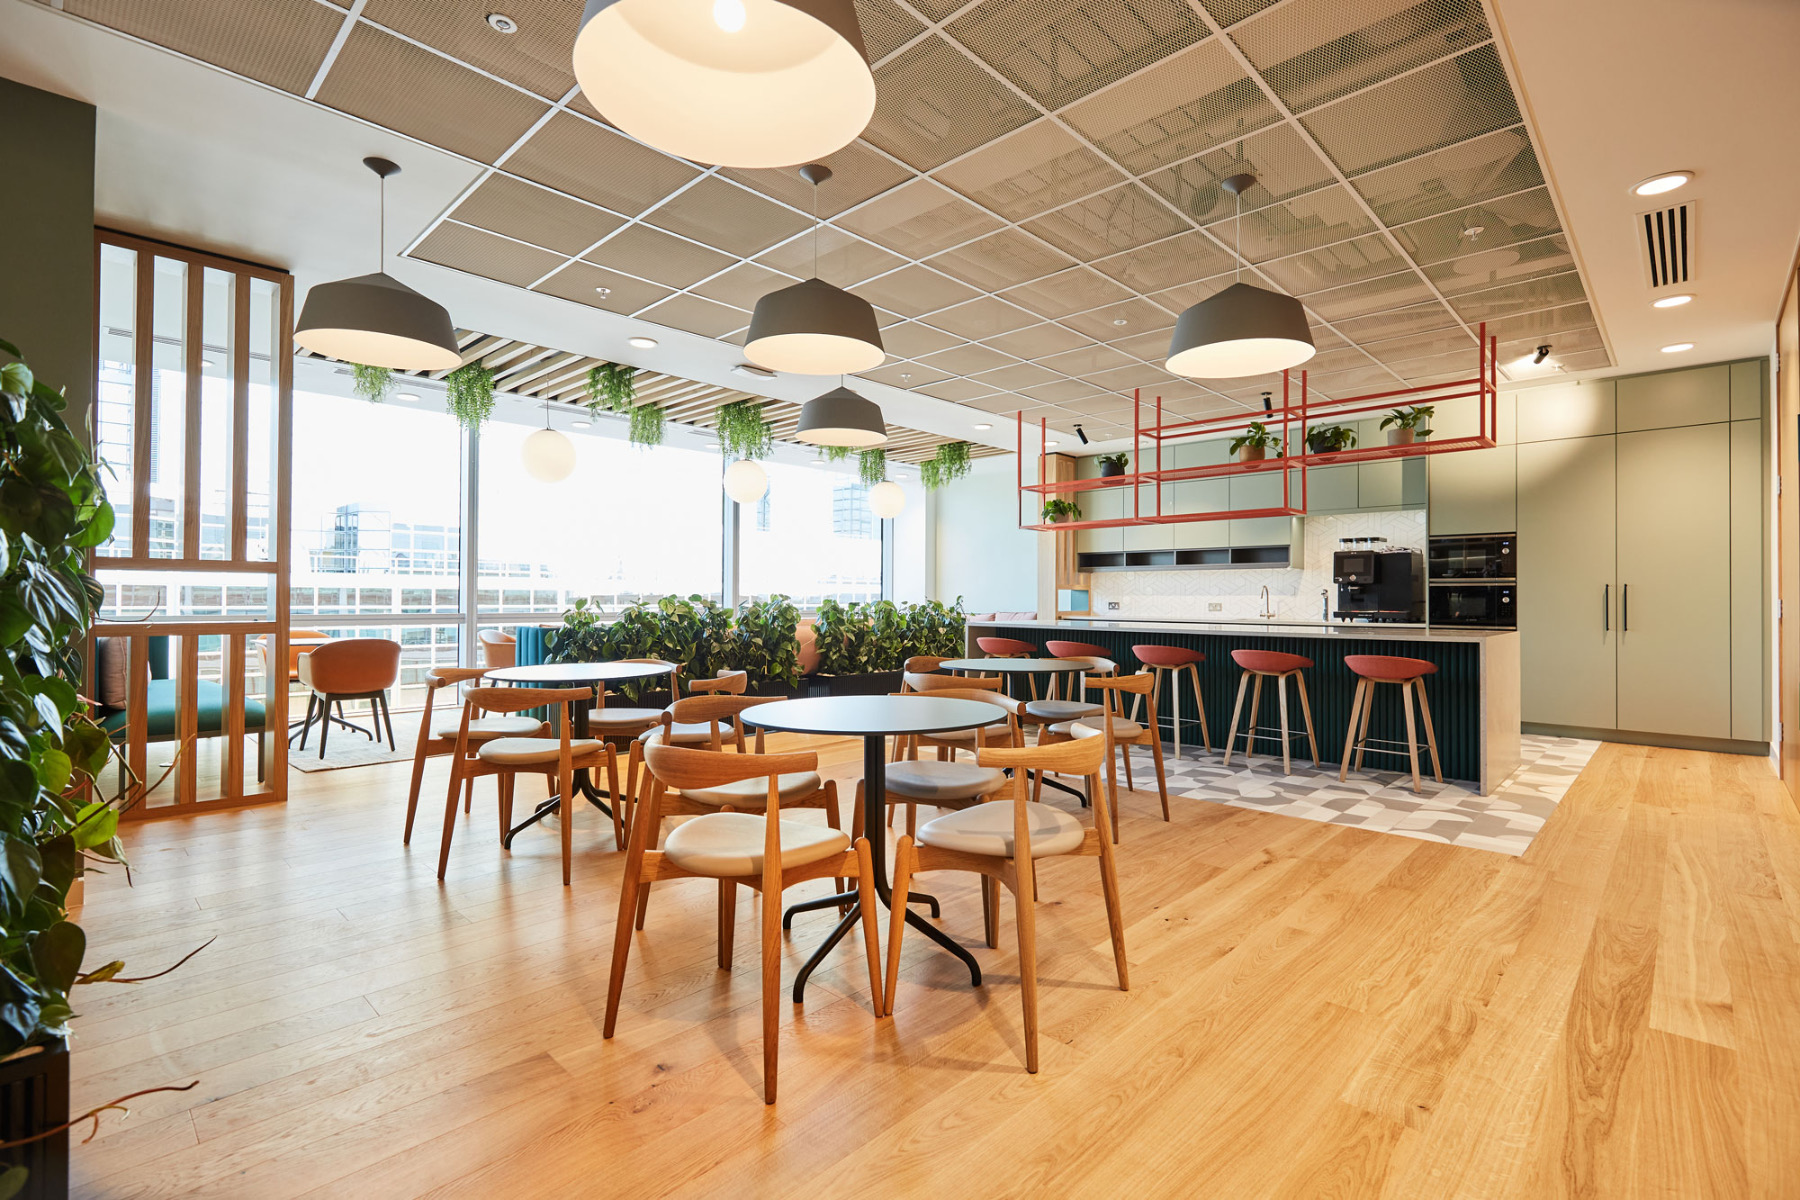 Inside London-Based Financial Services Firm's Offices